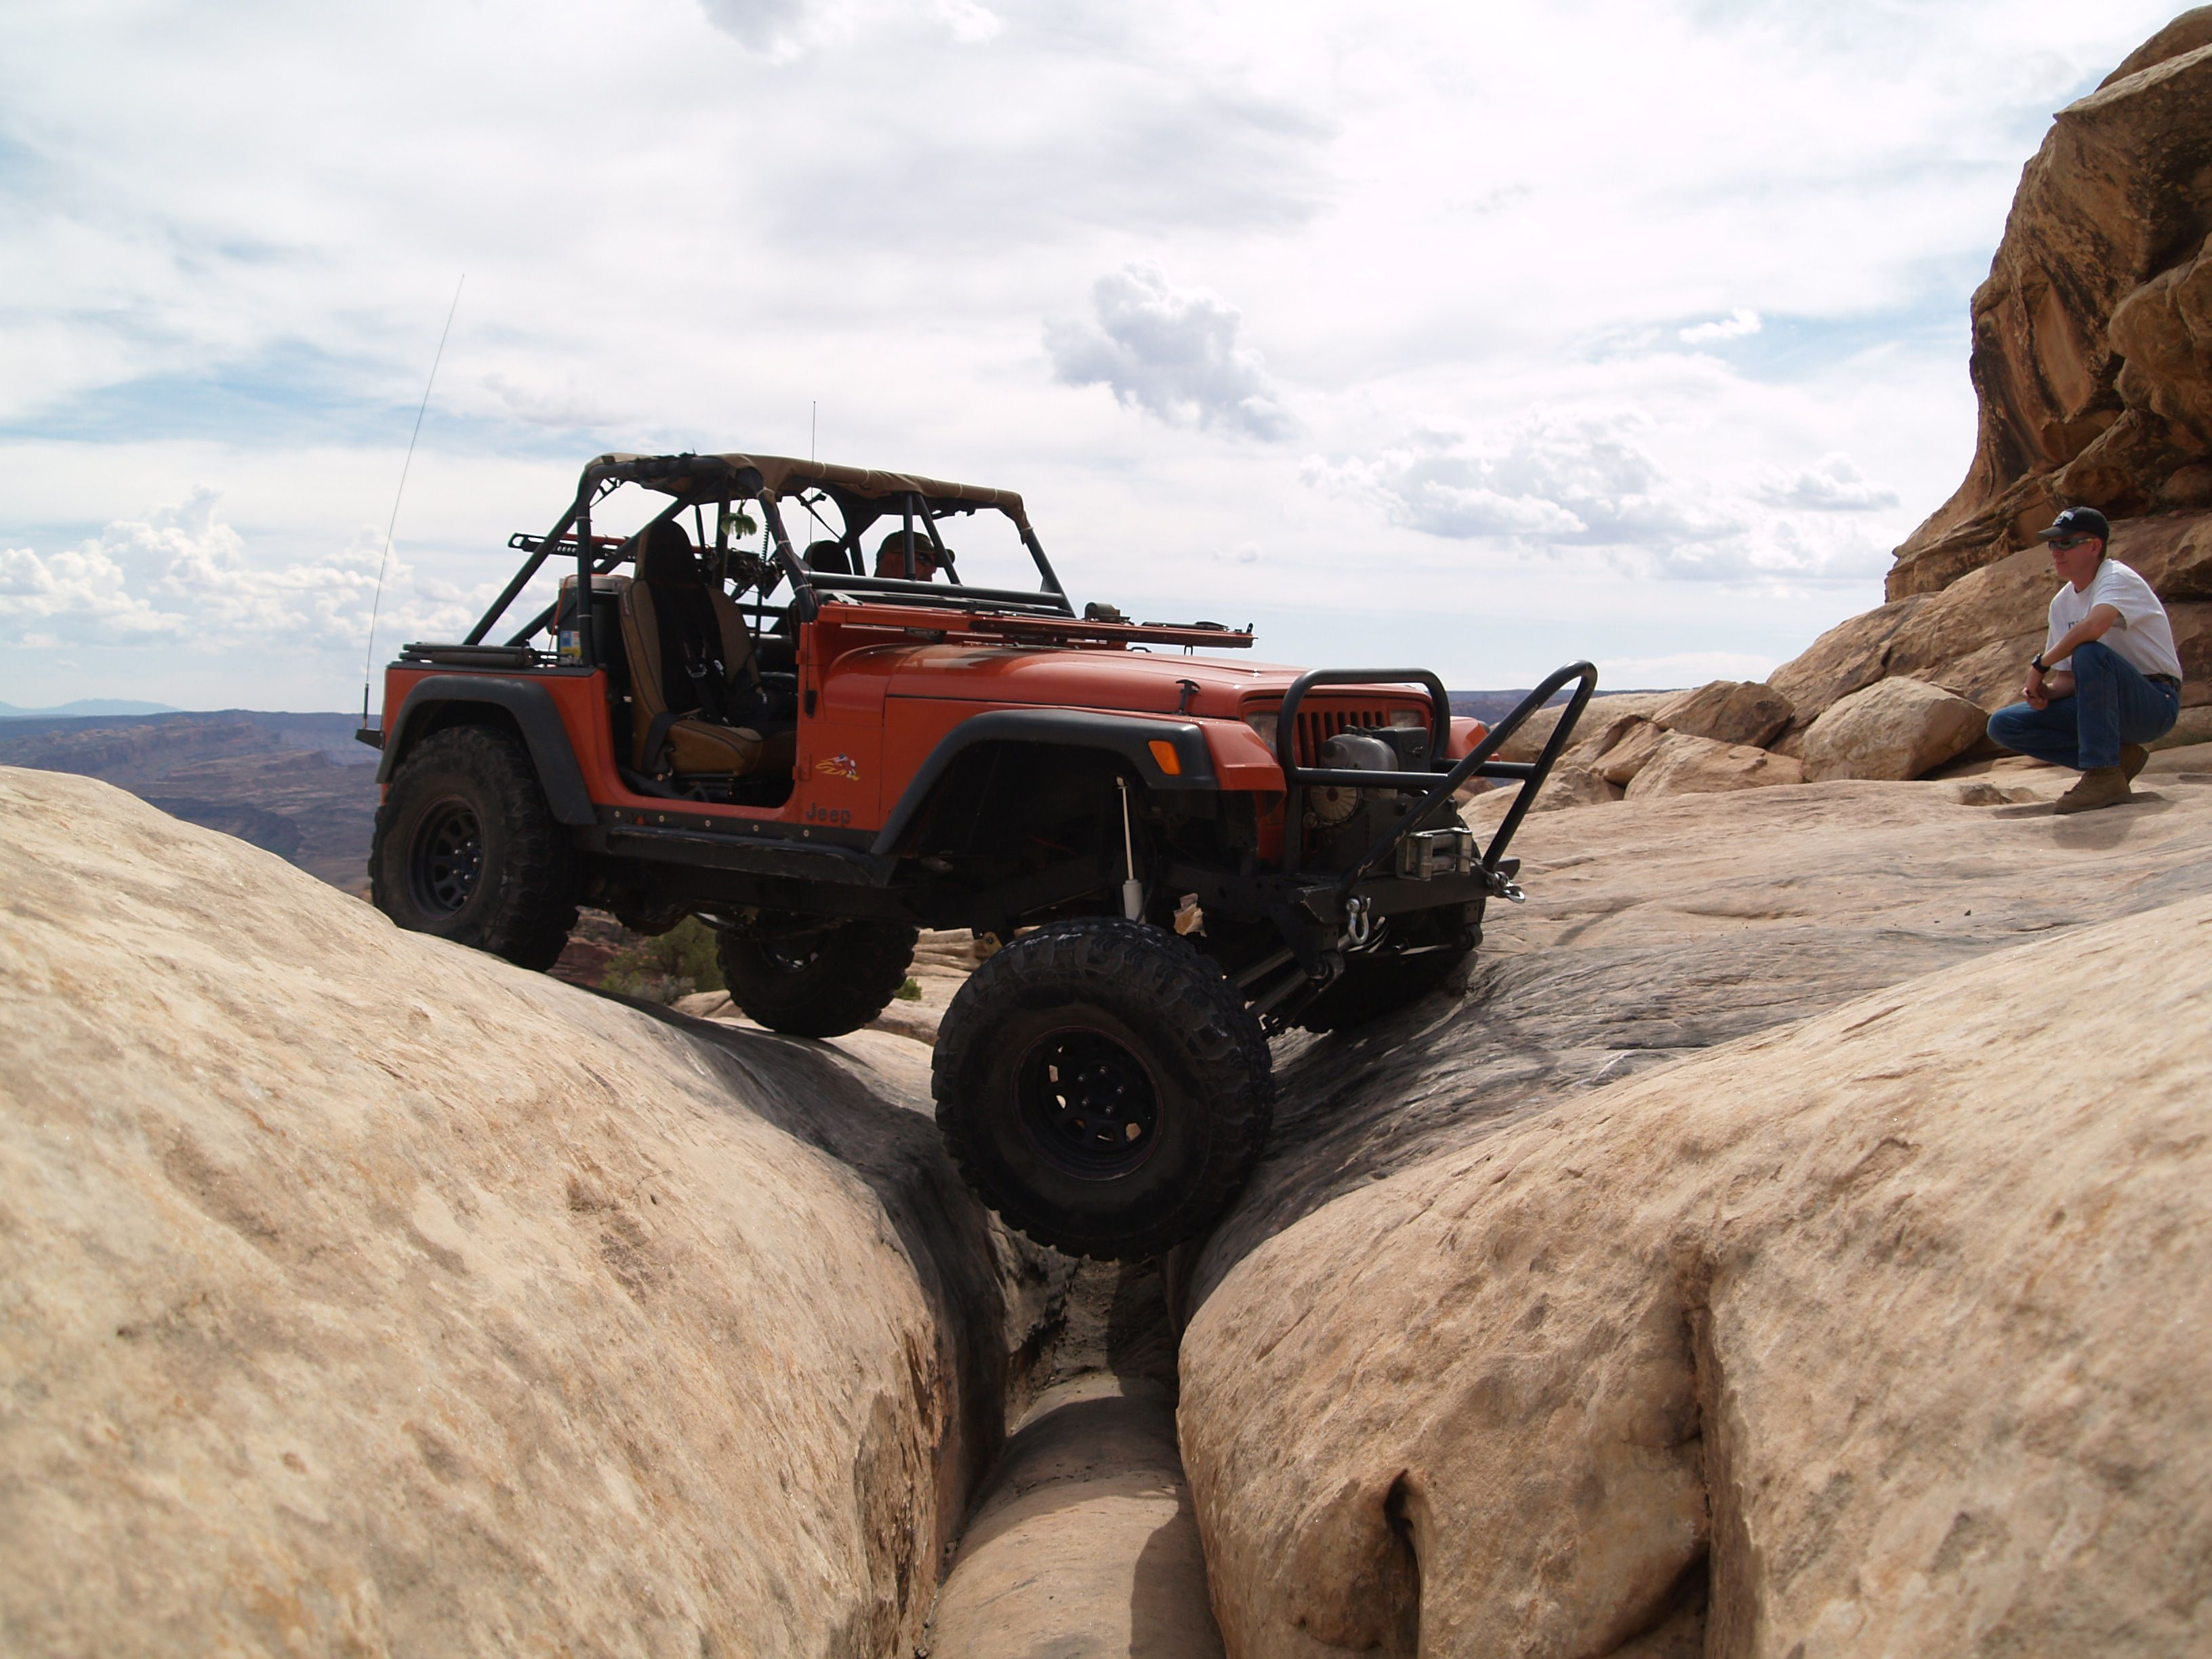 Pin By Doug Crosby On Jeeping Cool Jeeps Jeep Wrangler Yj Jeep